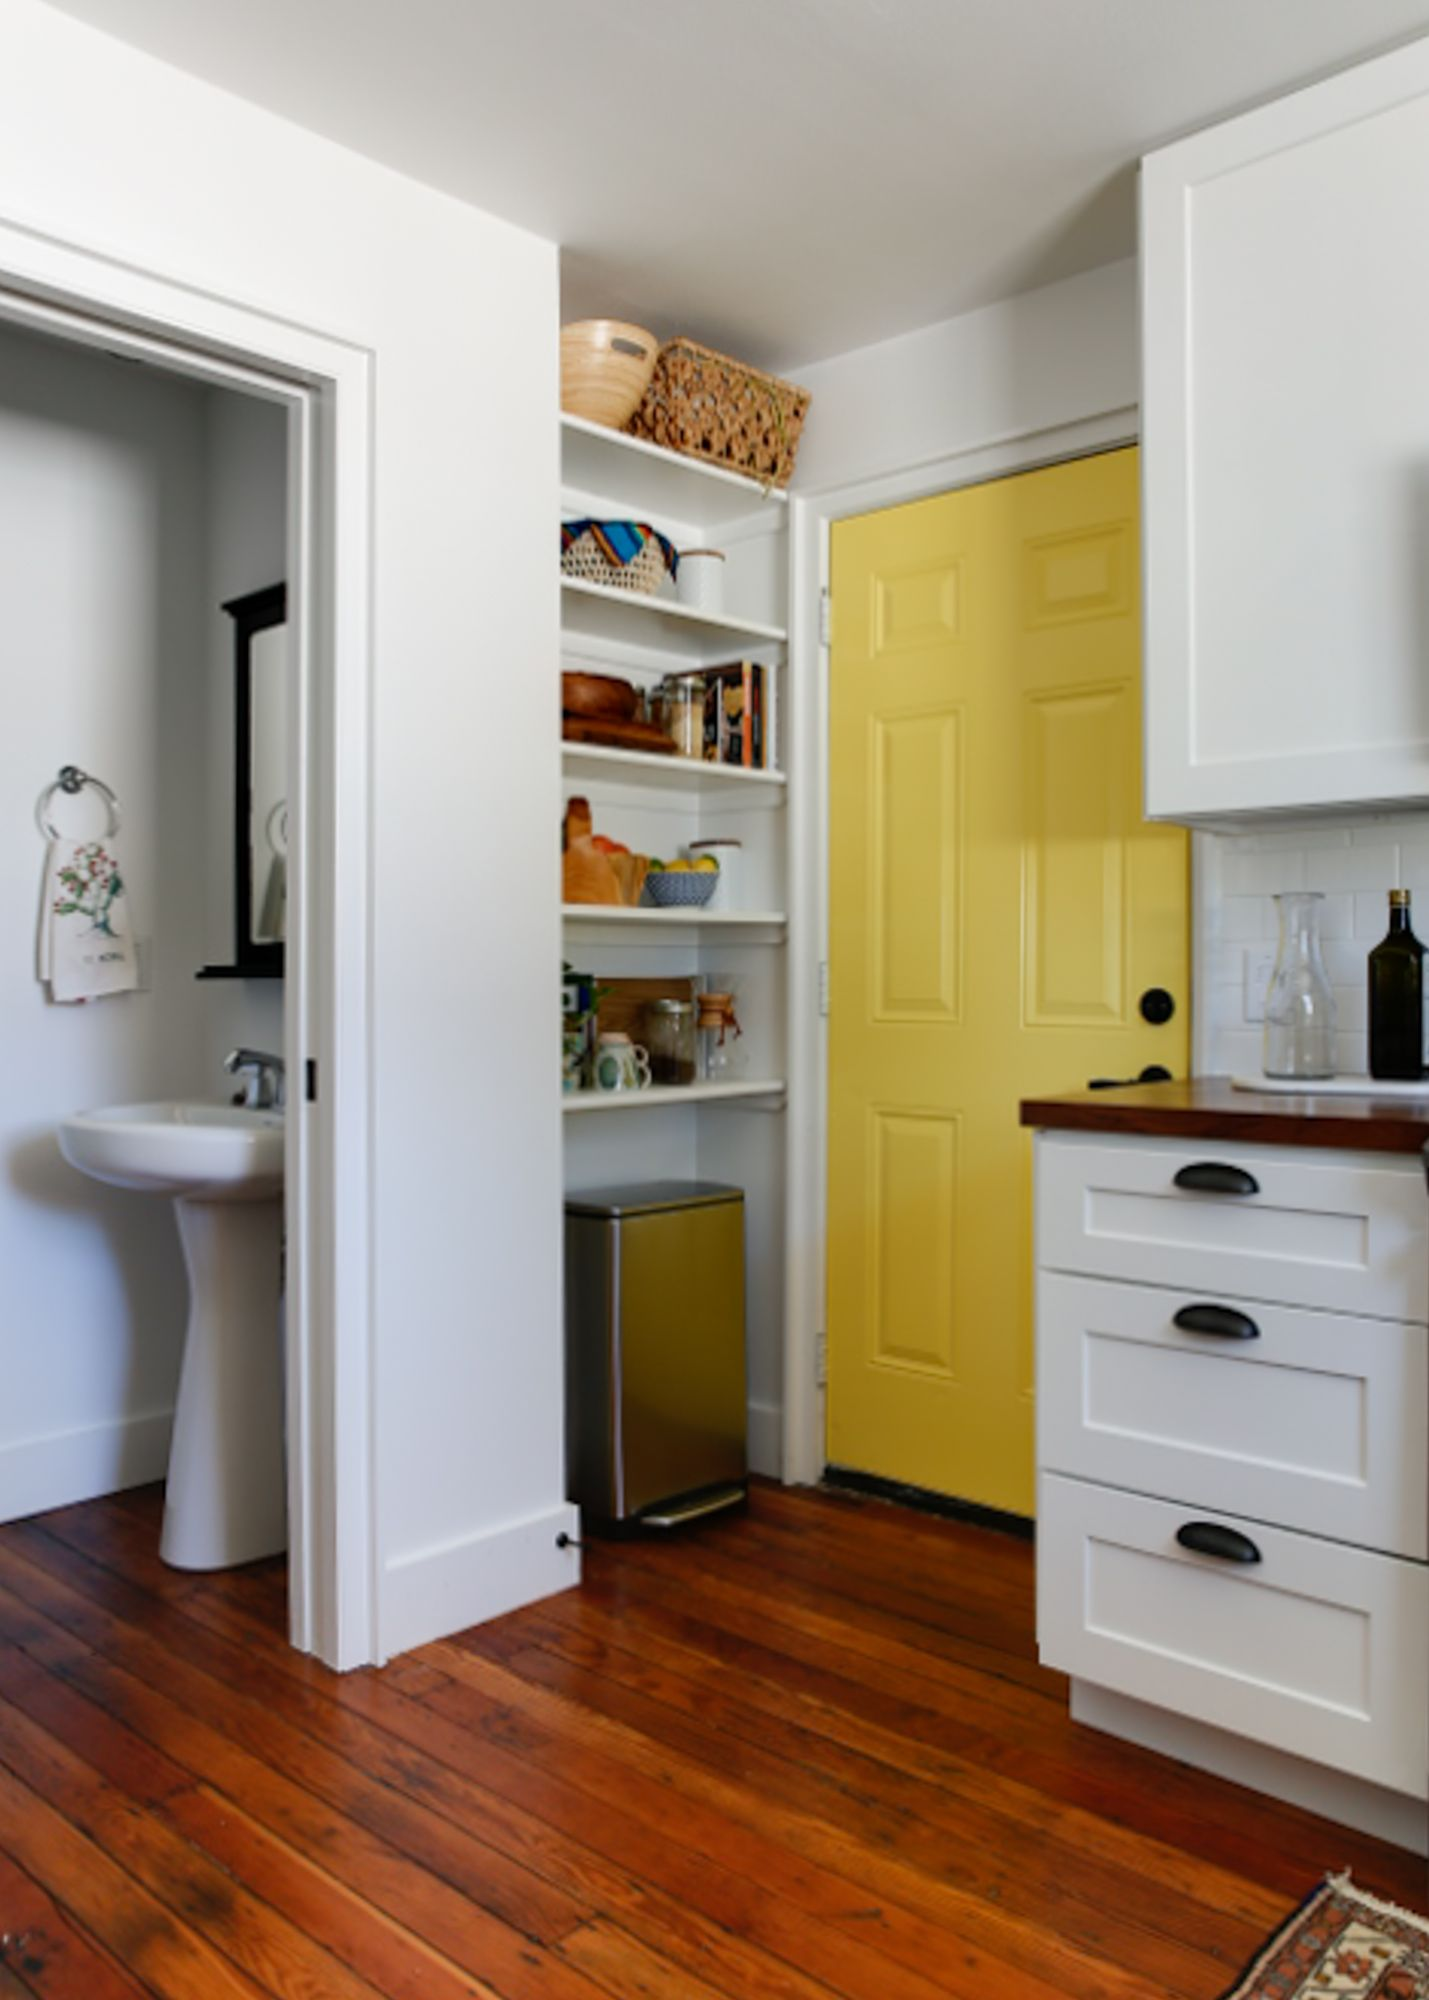 A little extra powder room off the kitchen.